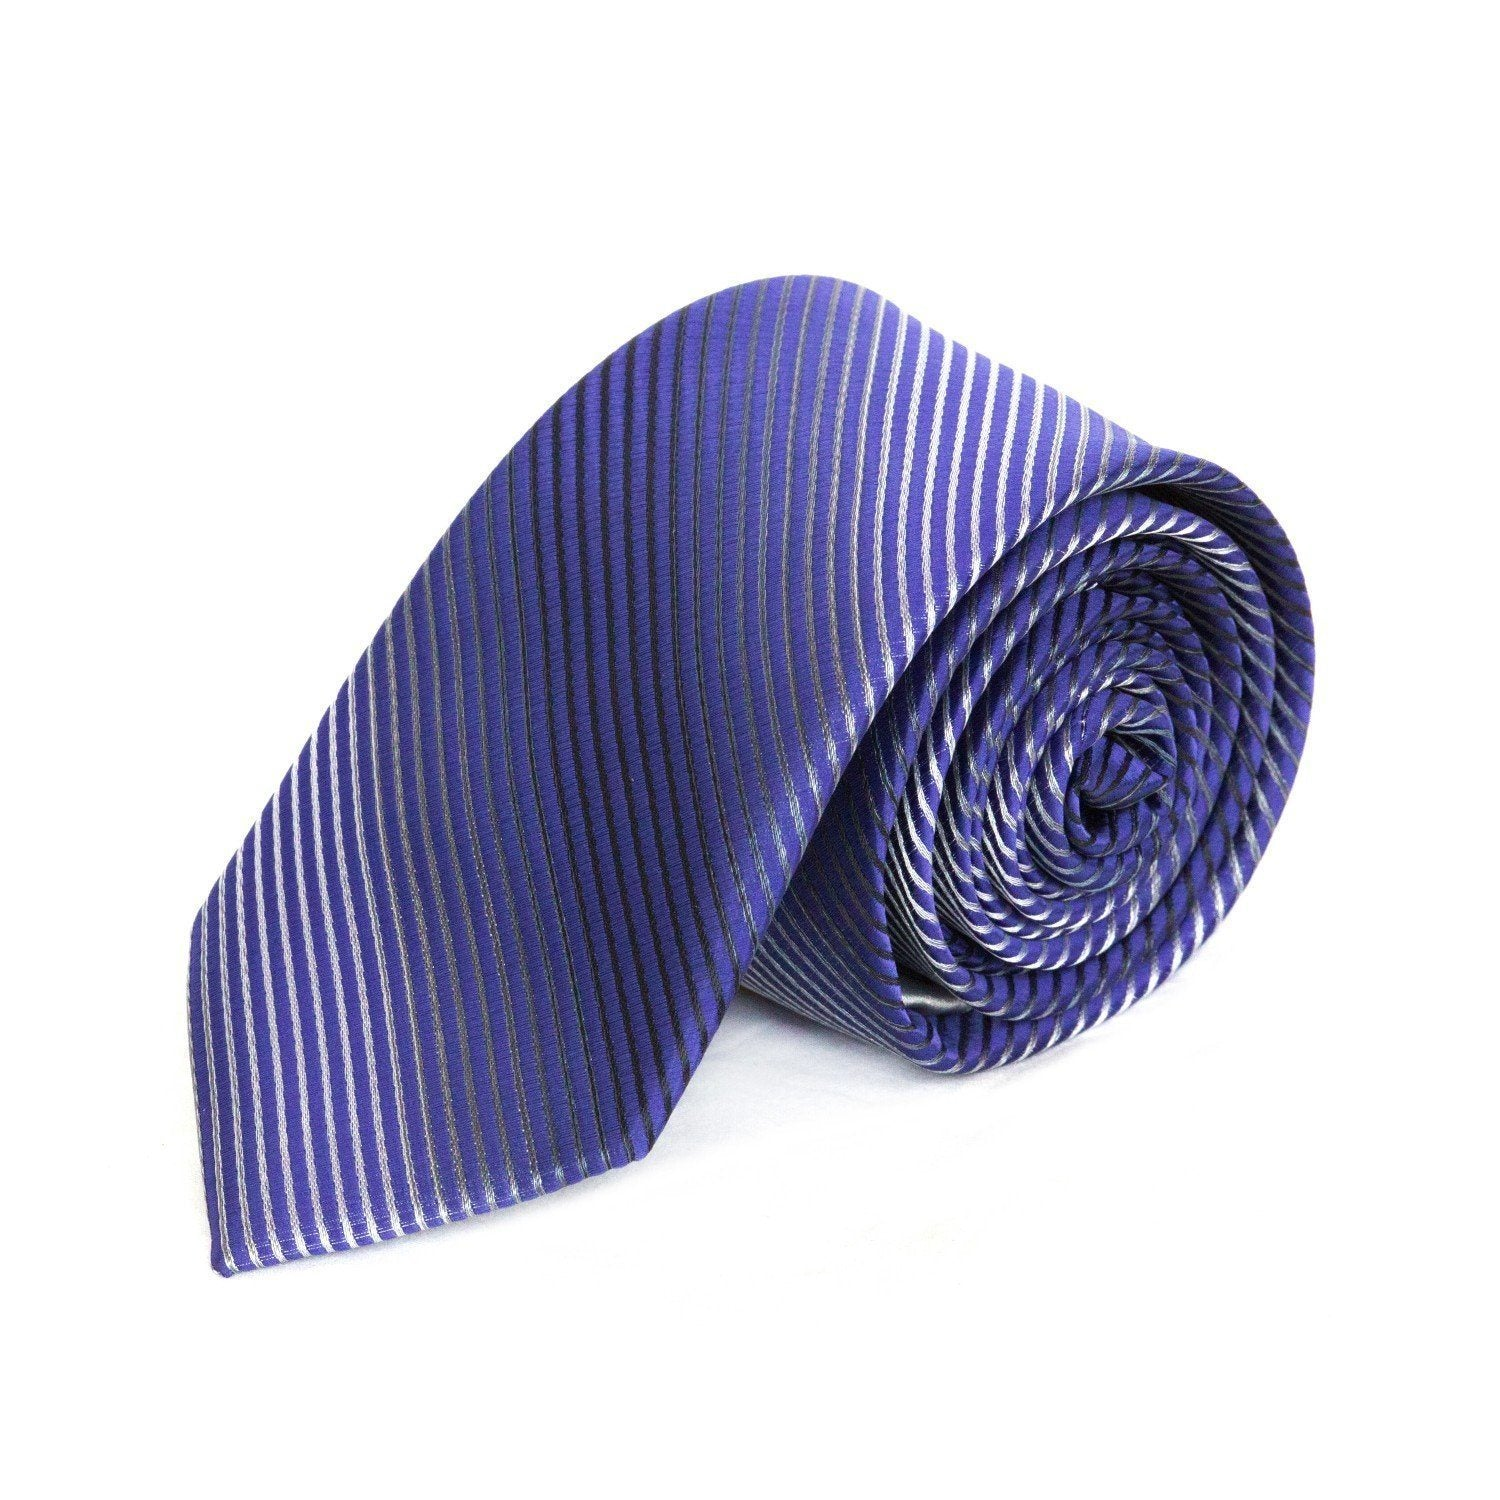 Dark Purple Gradient MF Tie Ties Cuffed.com.au